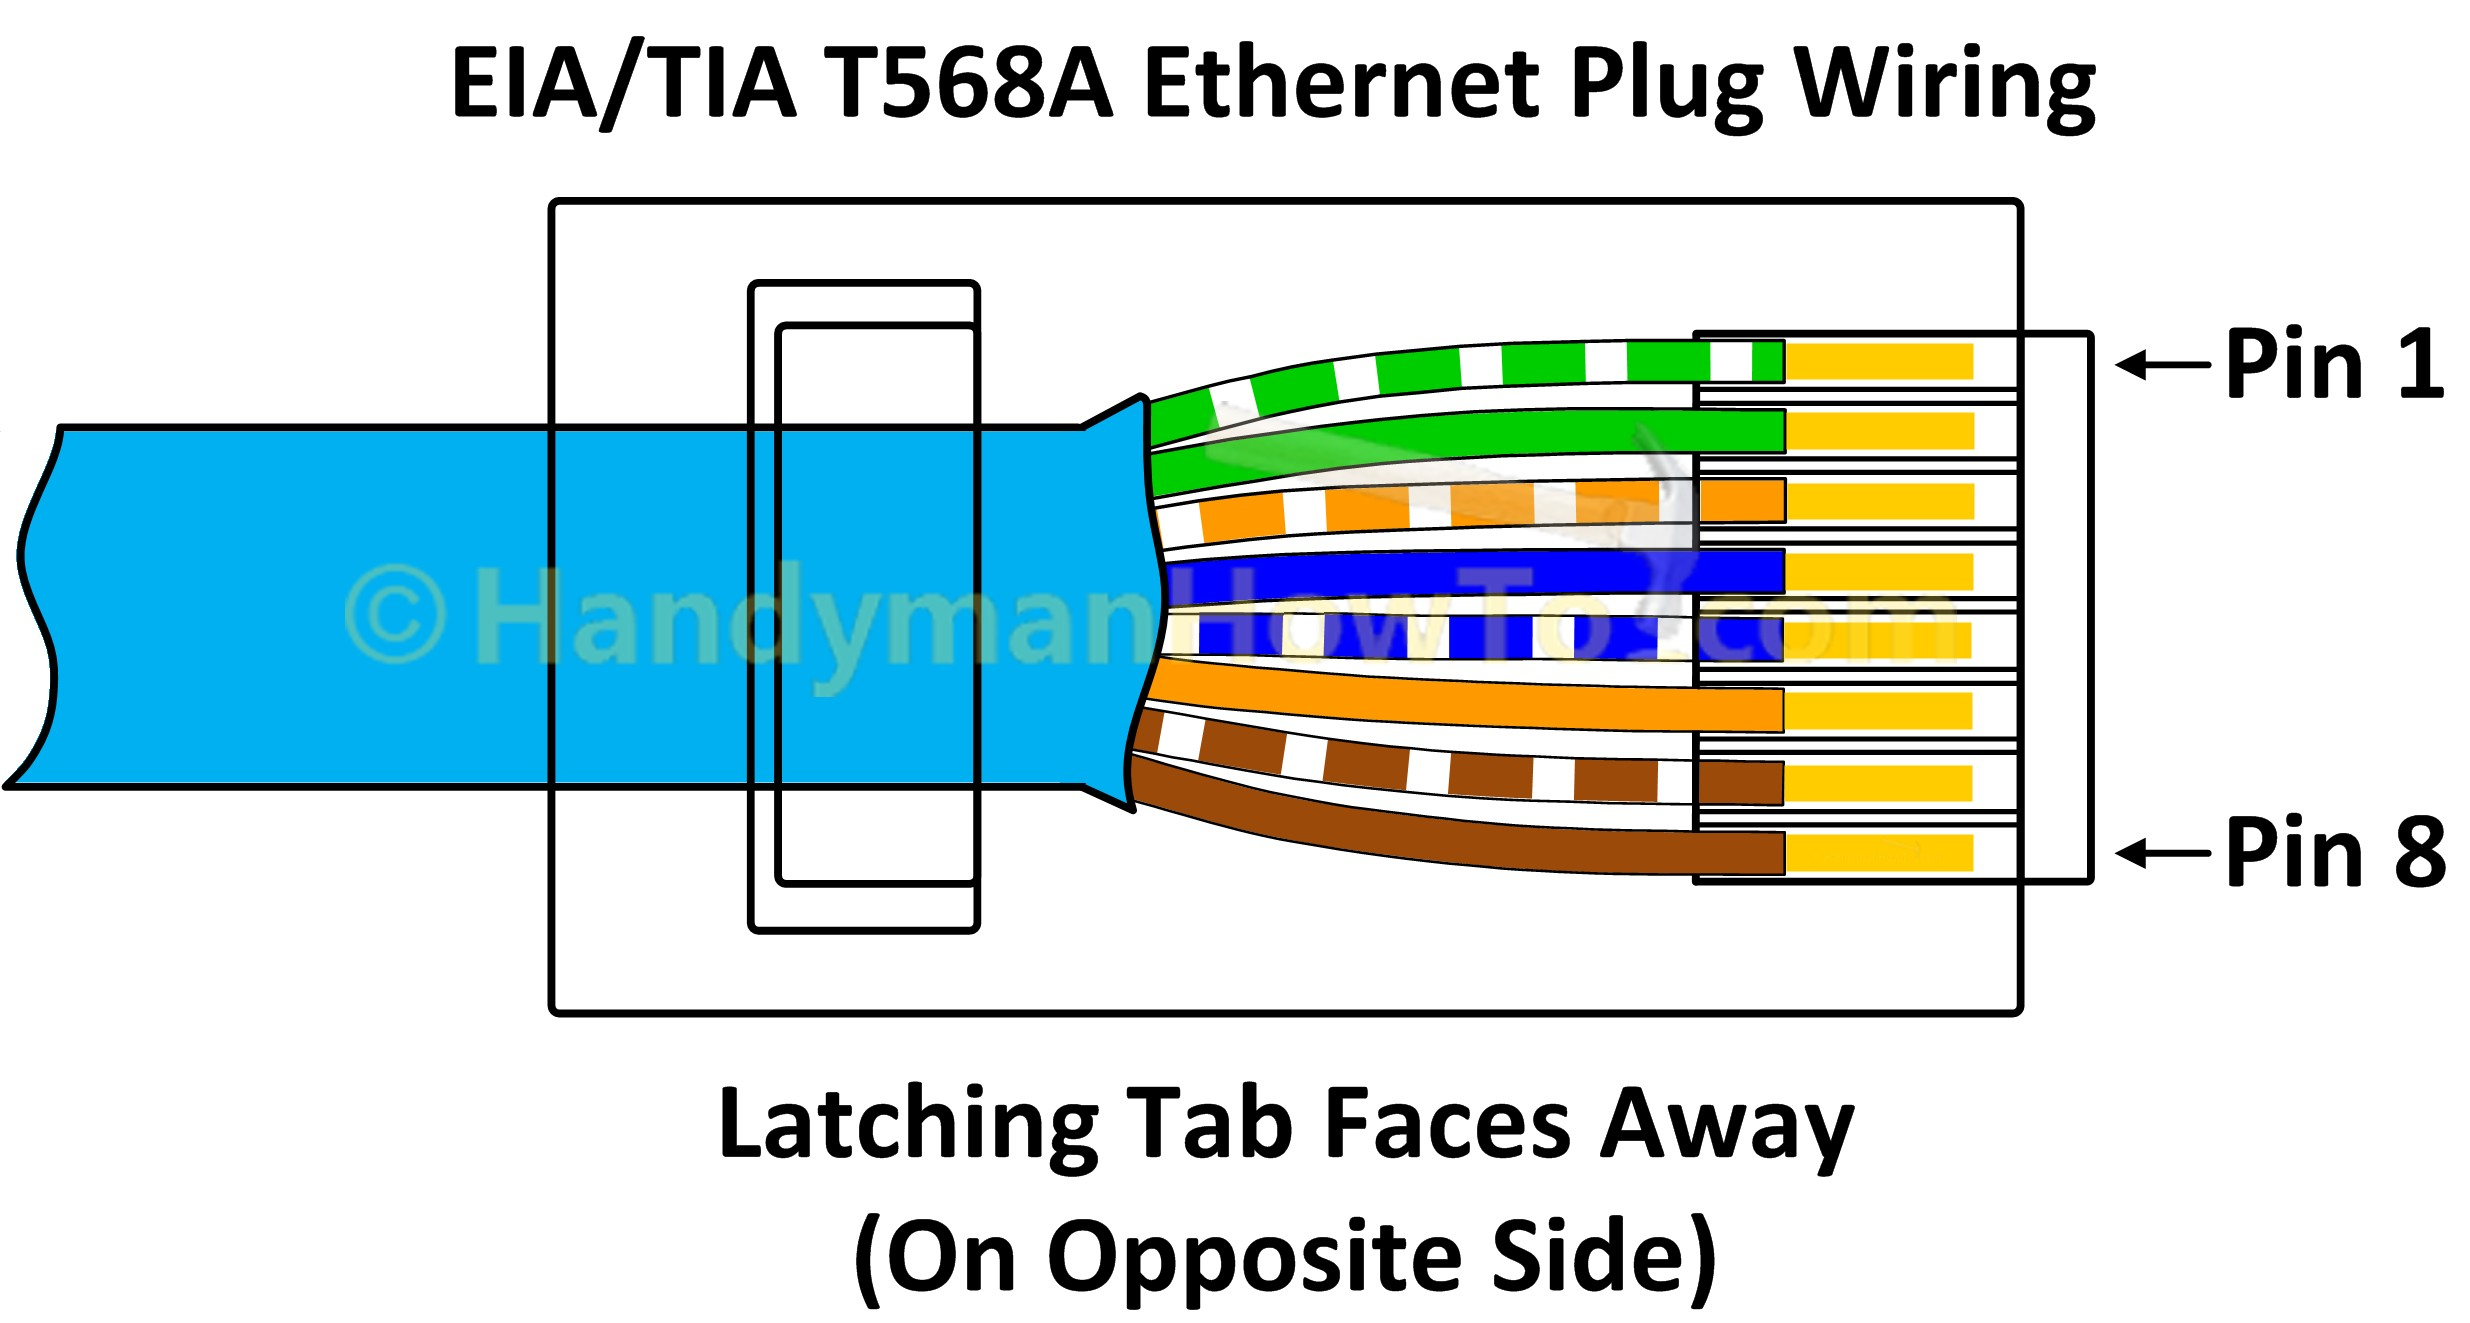 with ether cable wiring diagram further cat 5 cable wiring diagram rh autonomia co